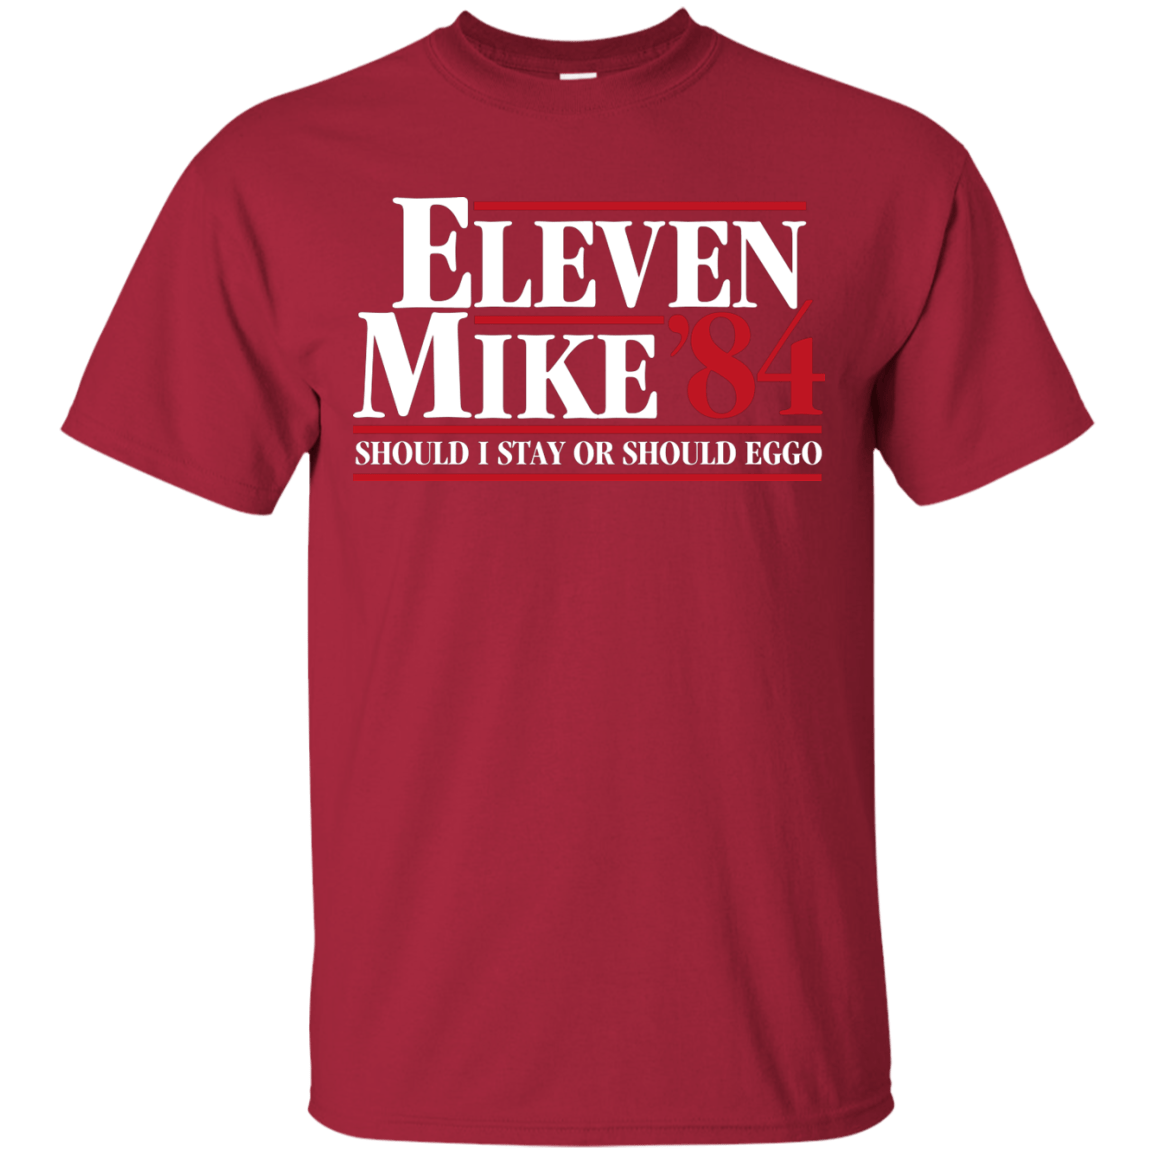 T-Shirts Cardinal / Small Eleven Mike 84 - Should I Stay or Should Eggo T-Shirt